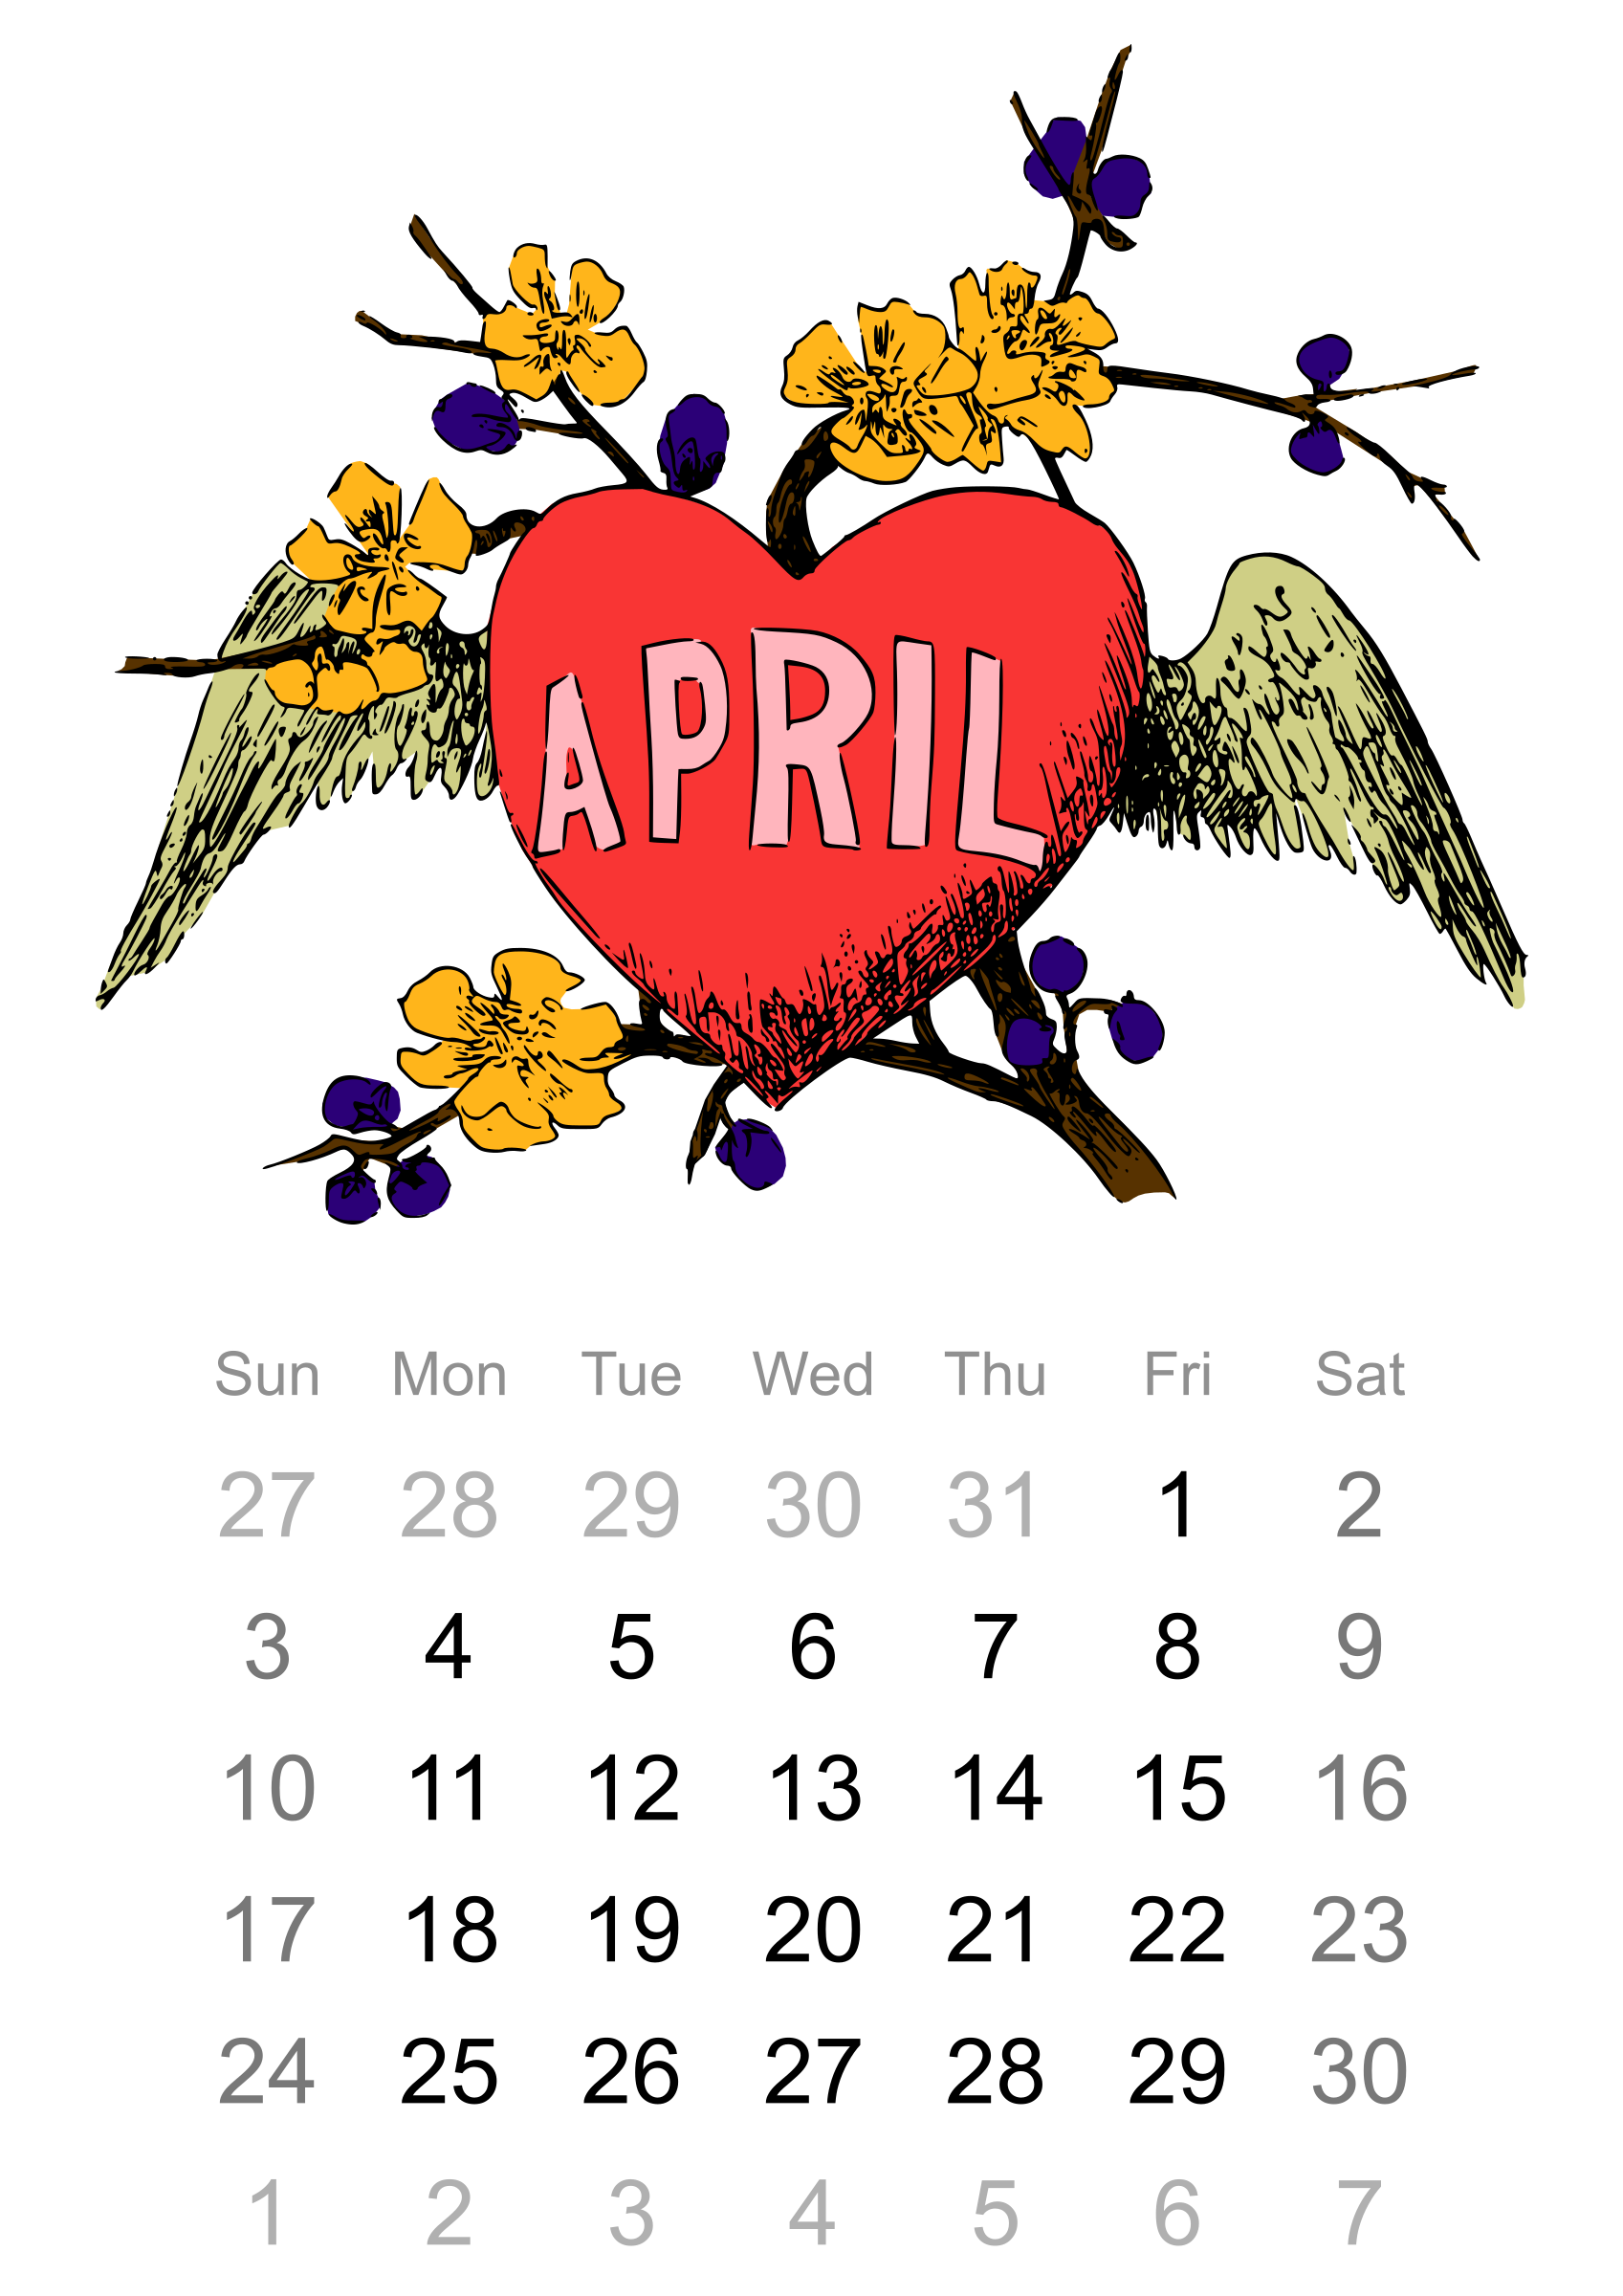 April Calendar Clip Art : Clipart april calendar